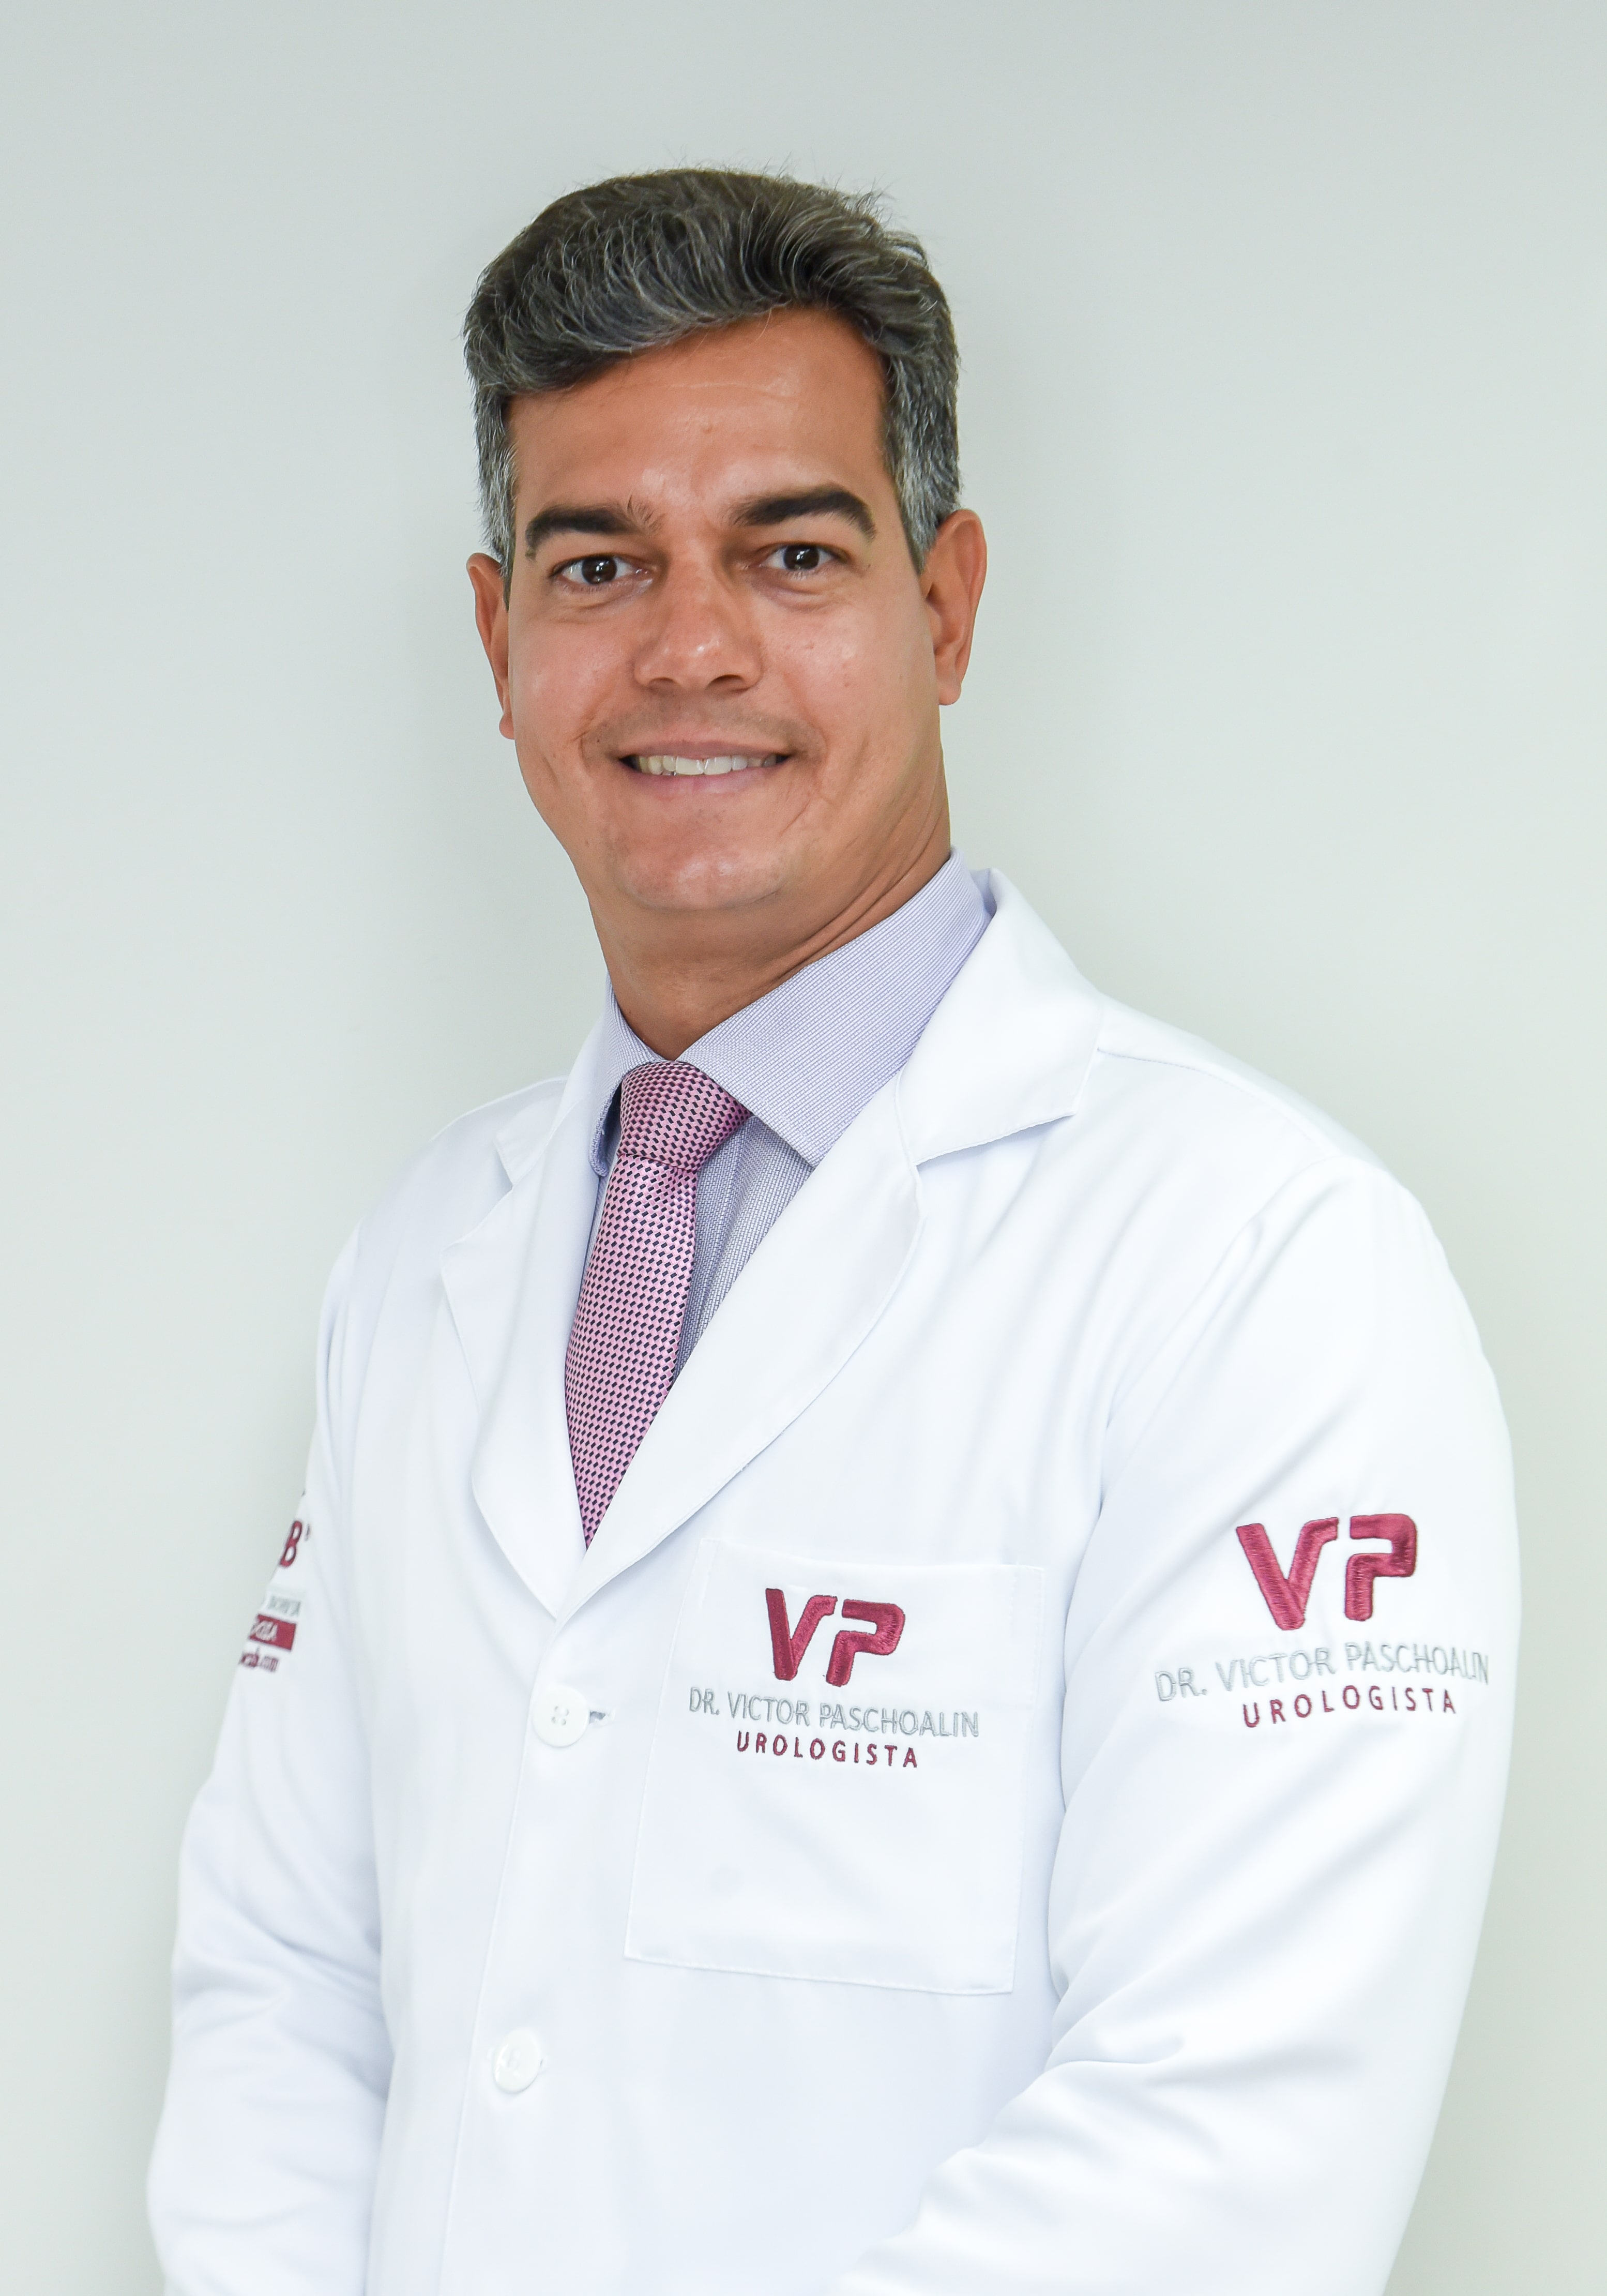 Dr. Victor Paschoalin